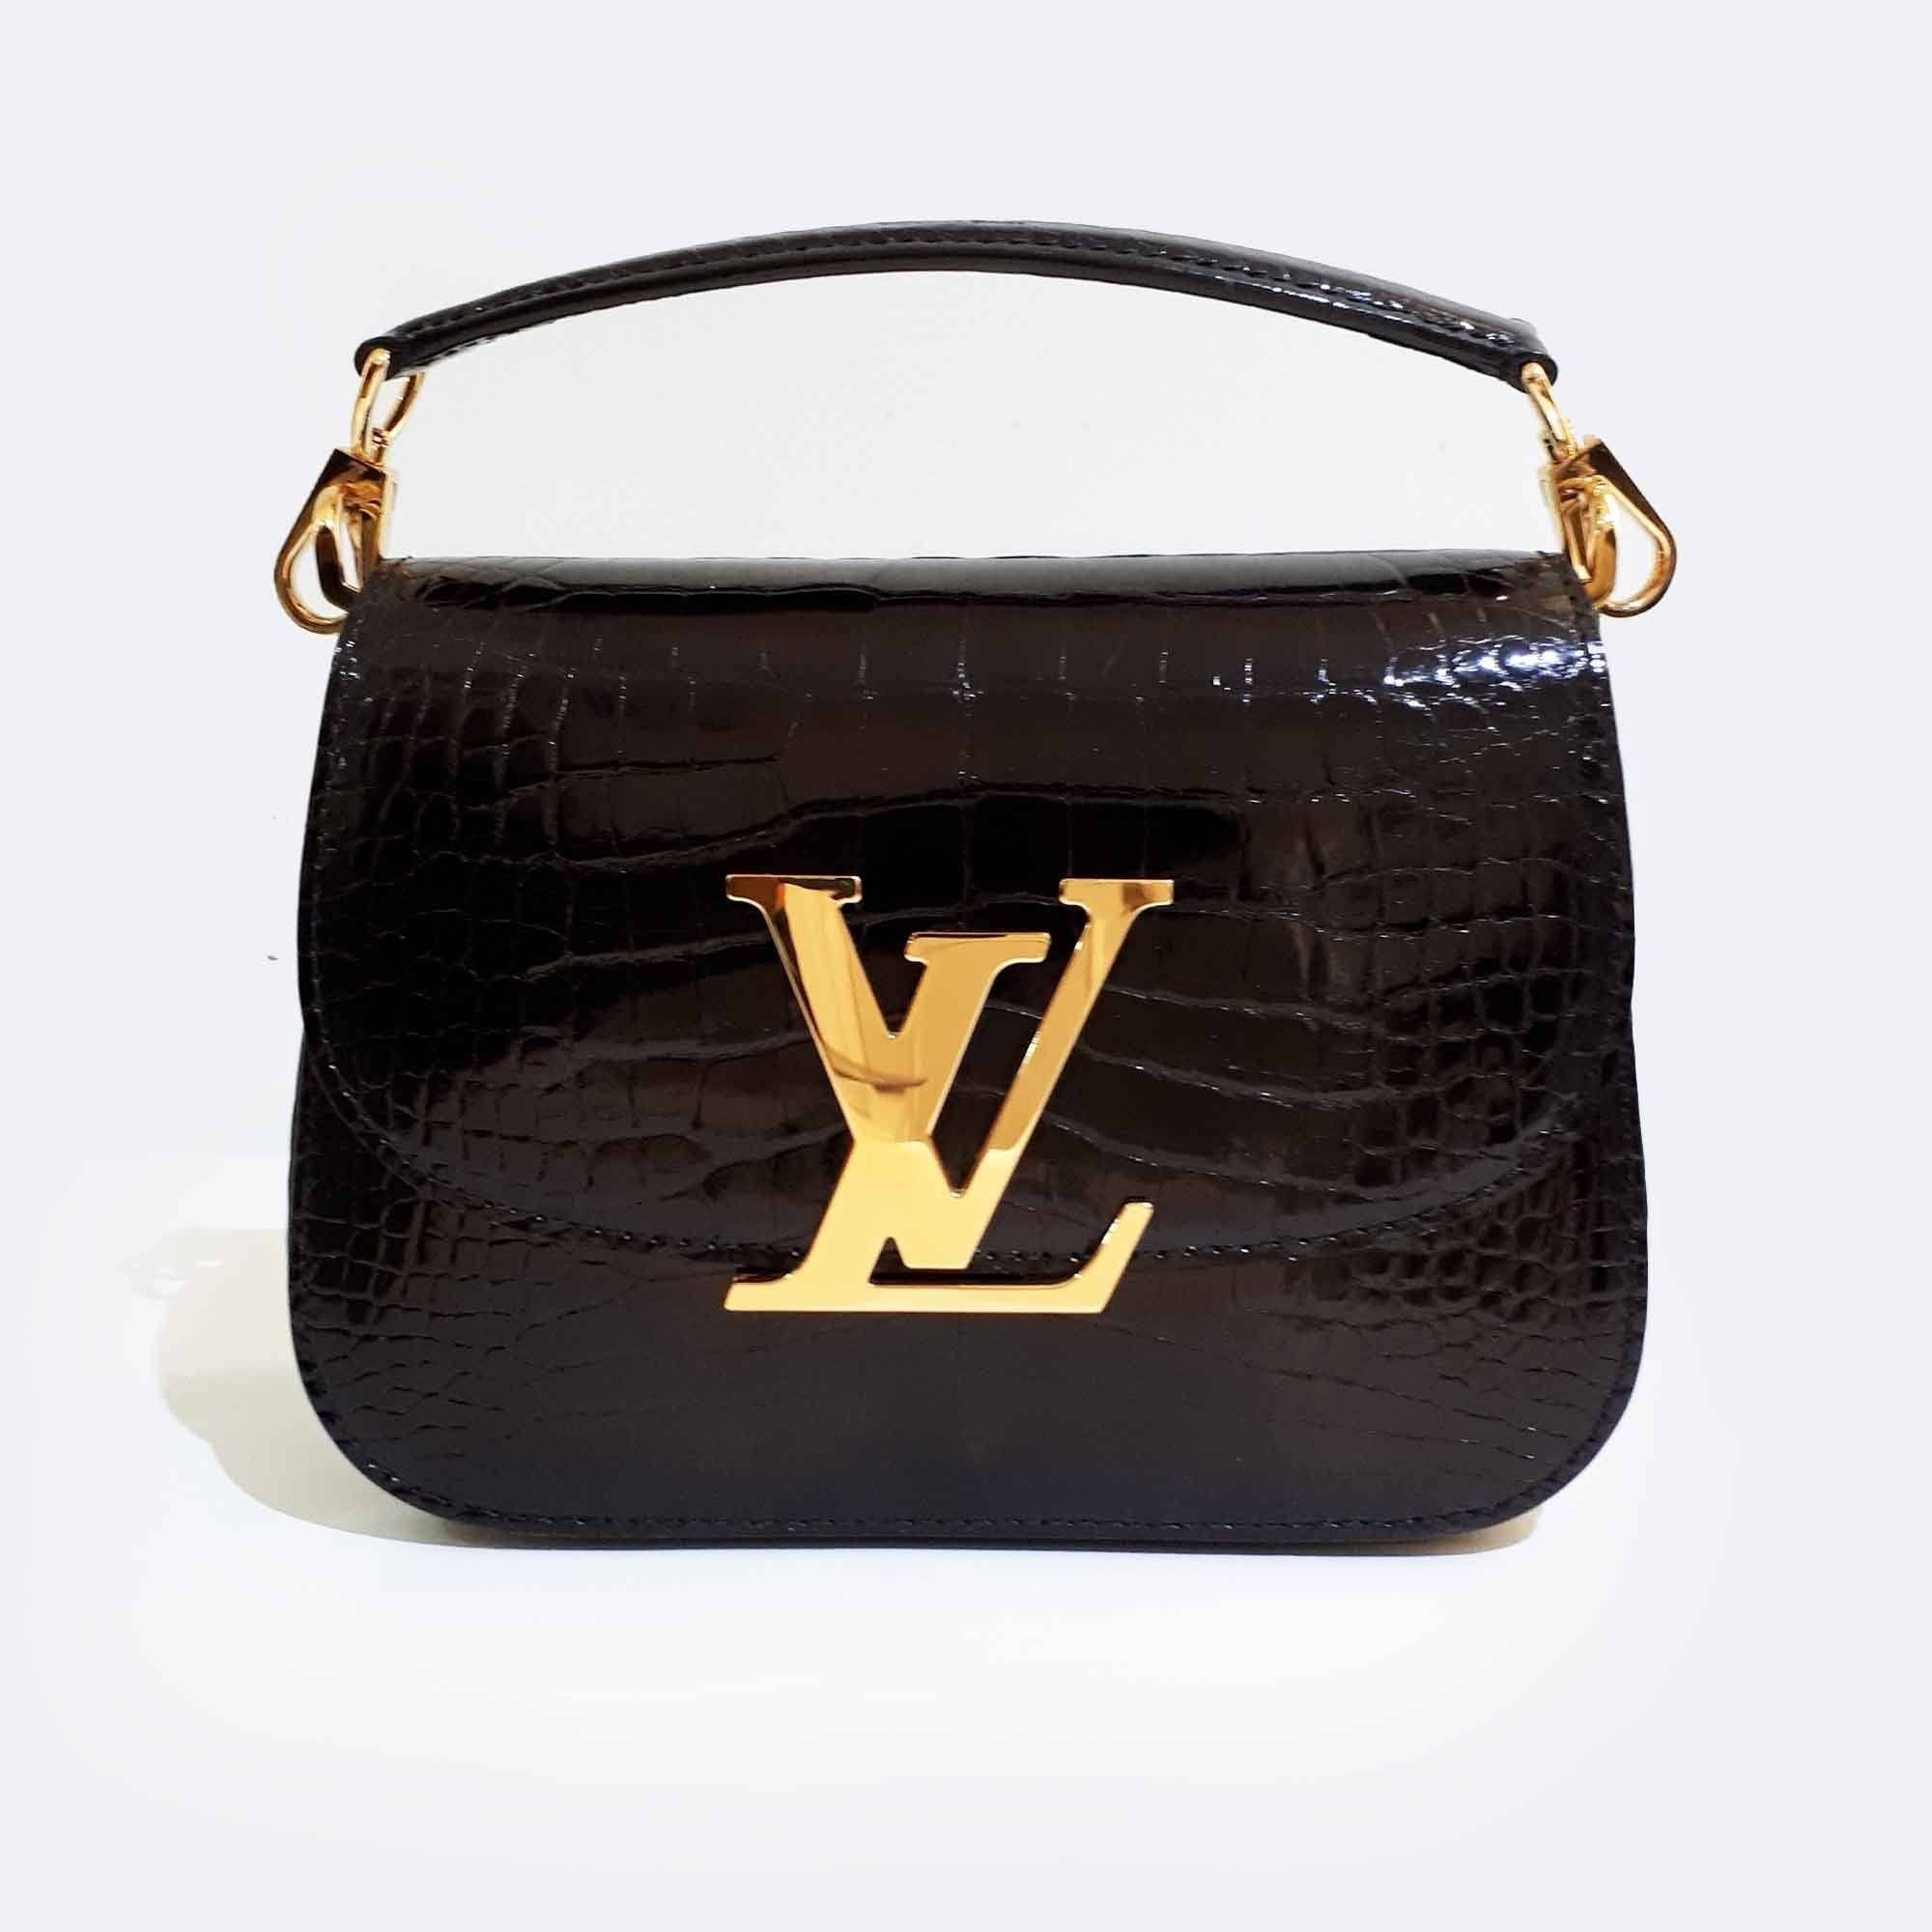 24ecaed813b2 Louis Vuitton Vivienne Alligator Crossbody Bag – Garderobe